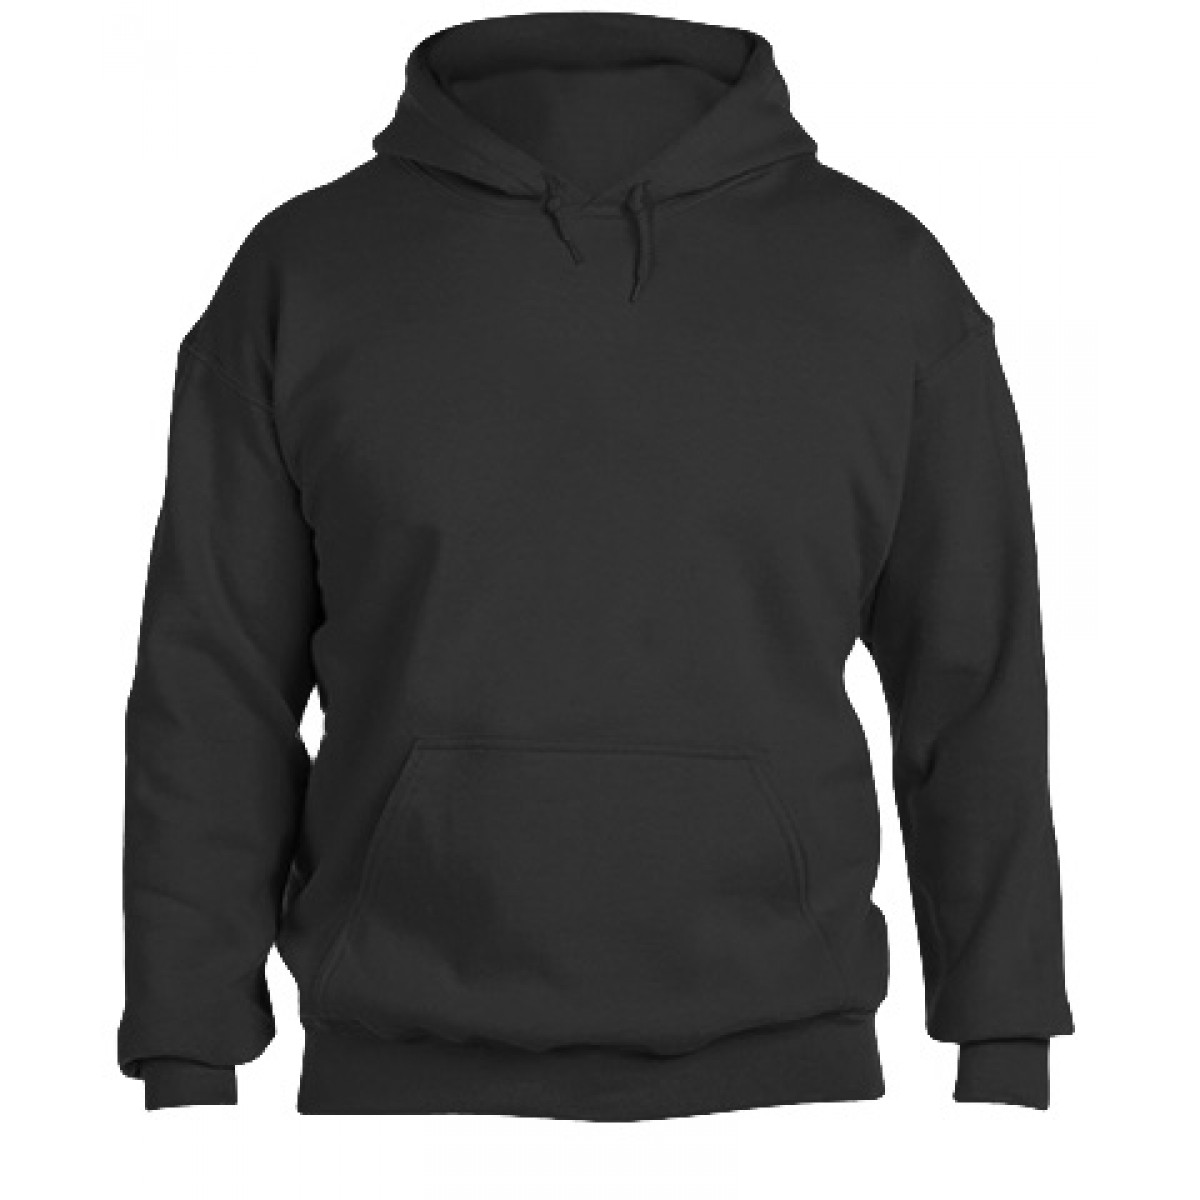 Hooded Sweatshirt 50/50 Heavy Blend -Black-S